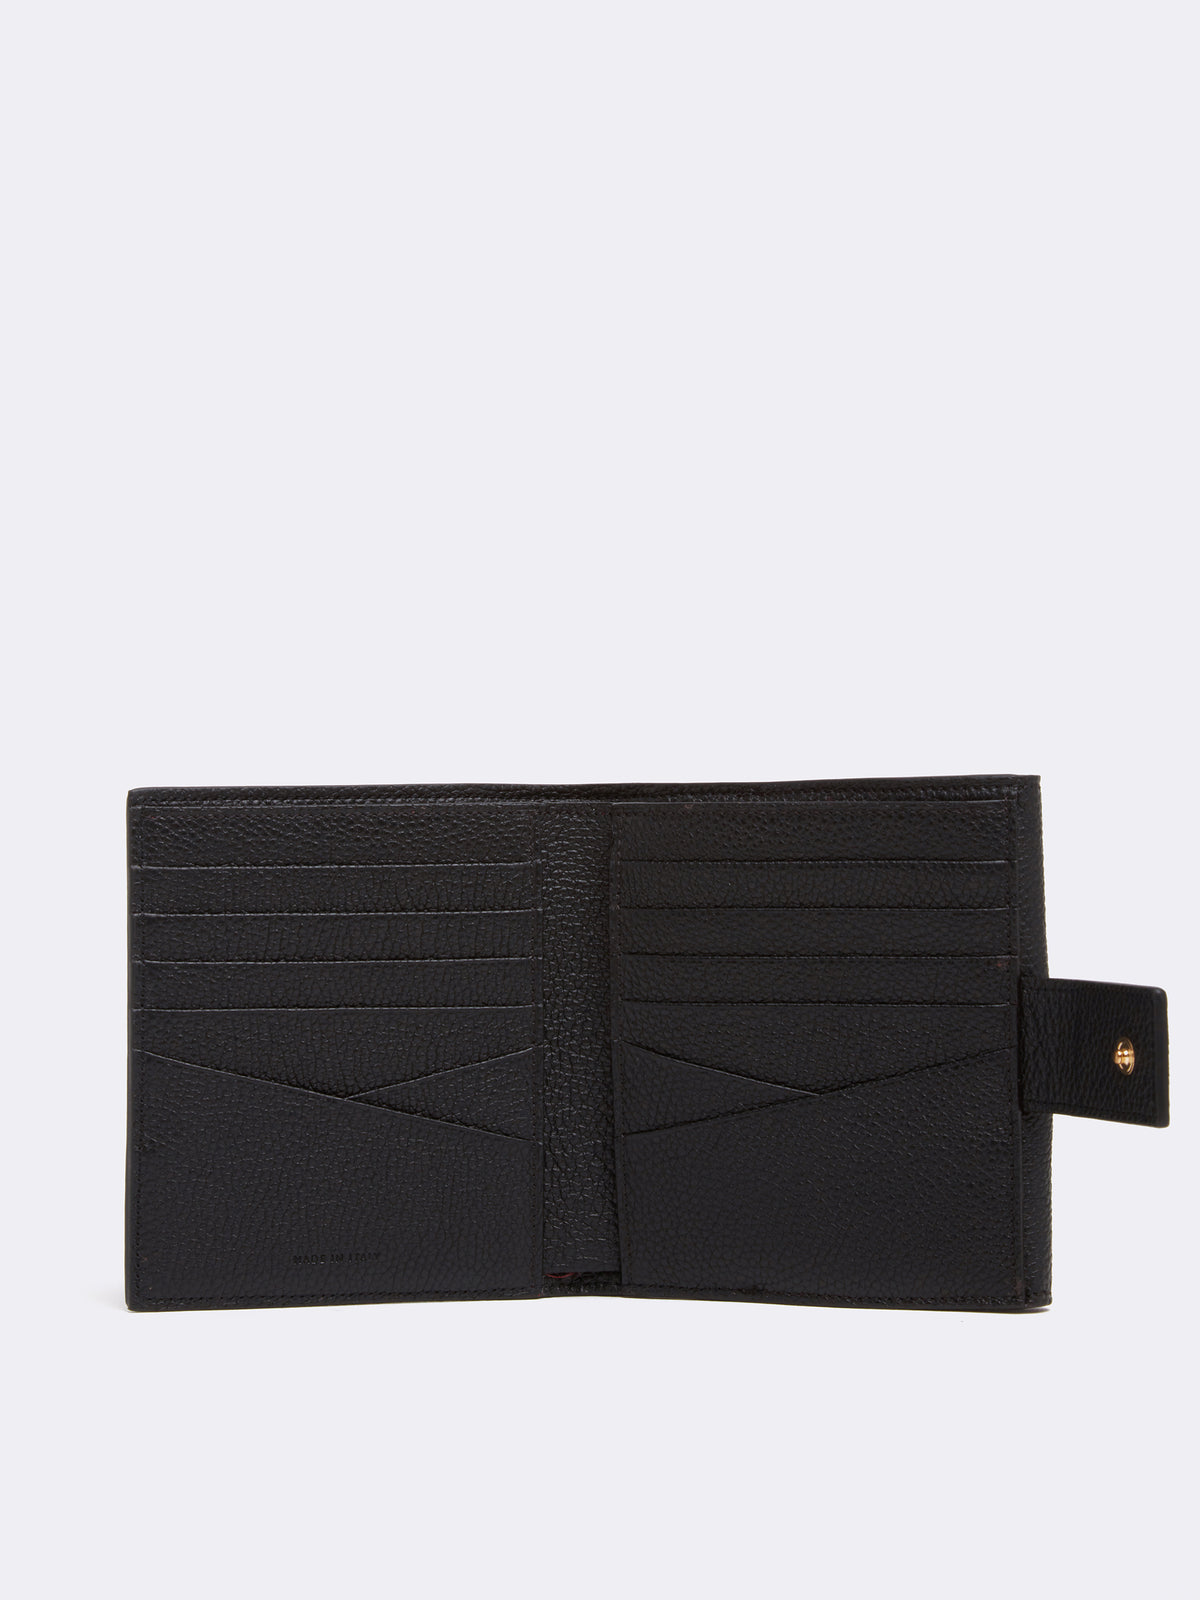 Mark Cross Hadley Leather French Wallet Tumbled Grain Black Interior